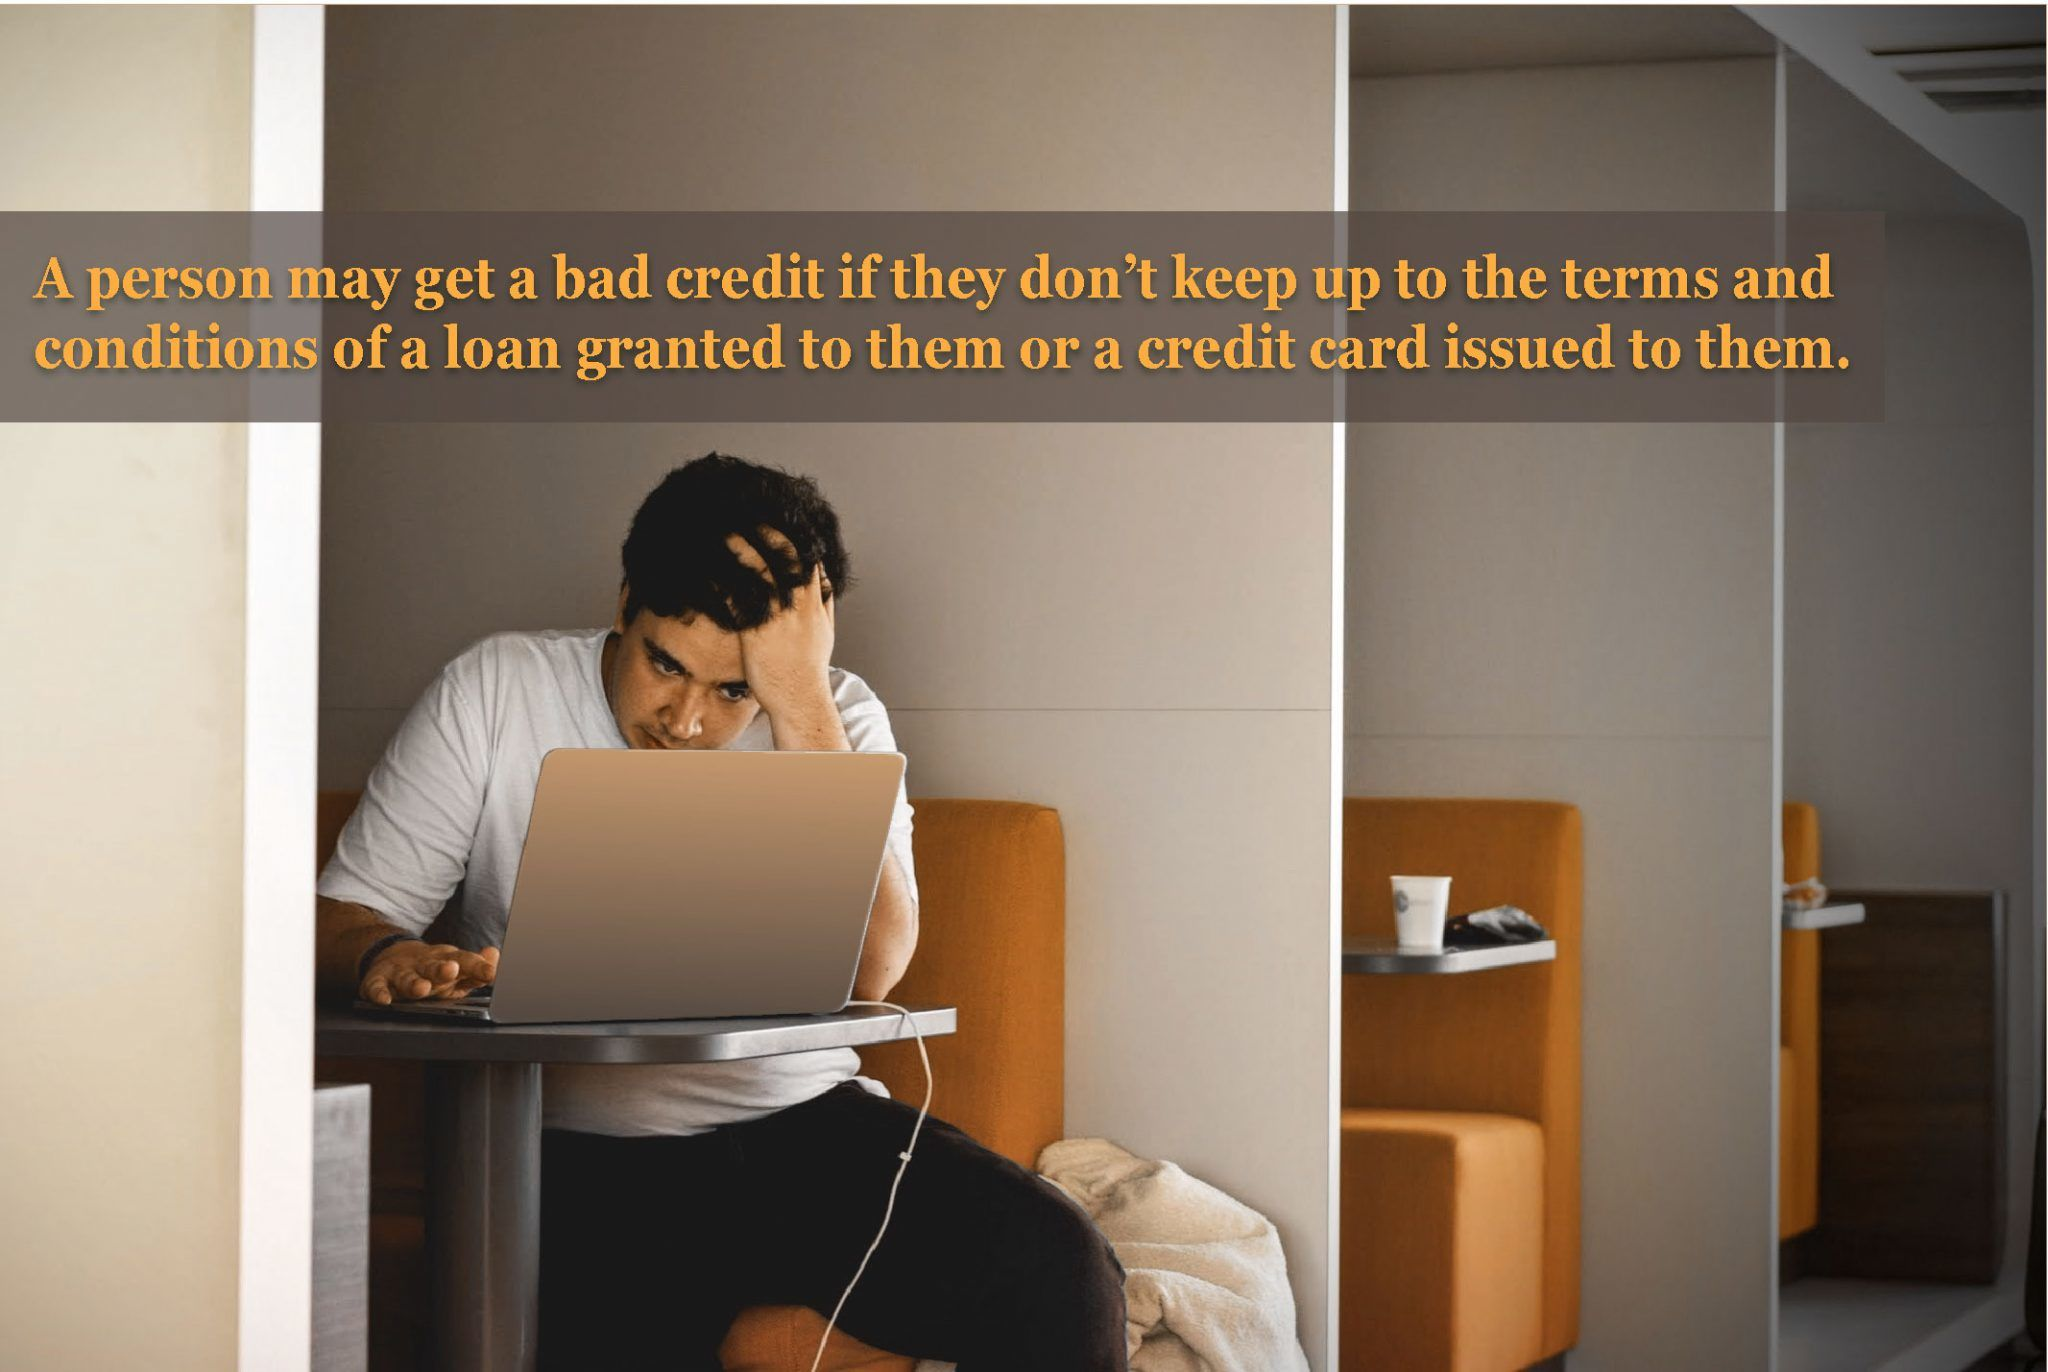 bad credit redefined